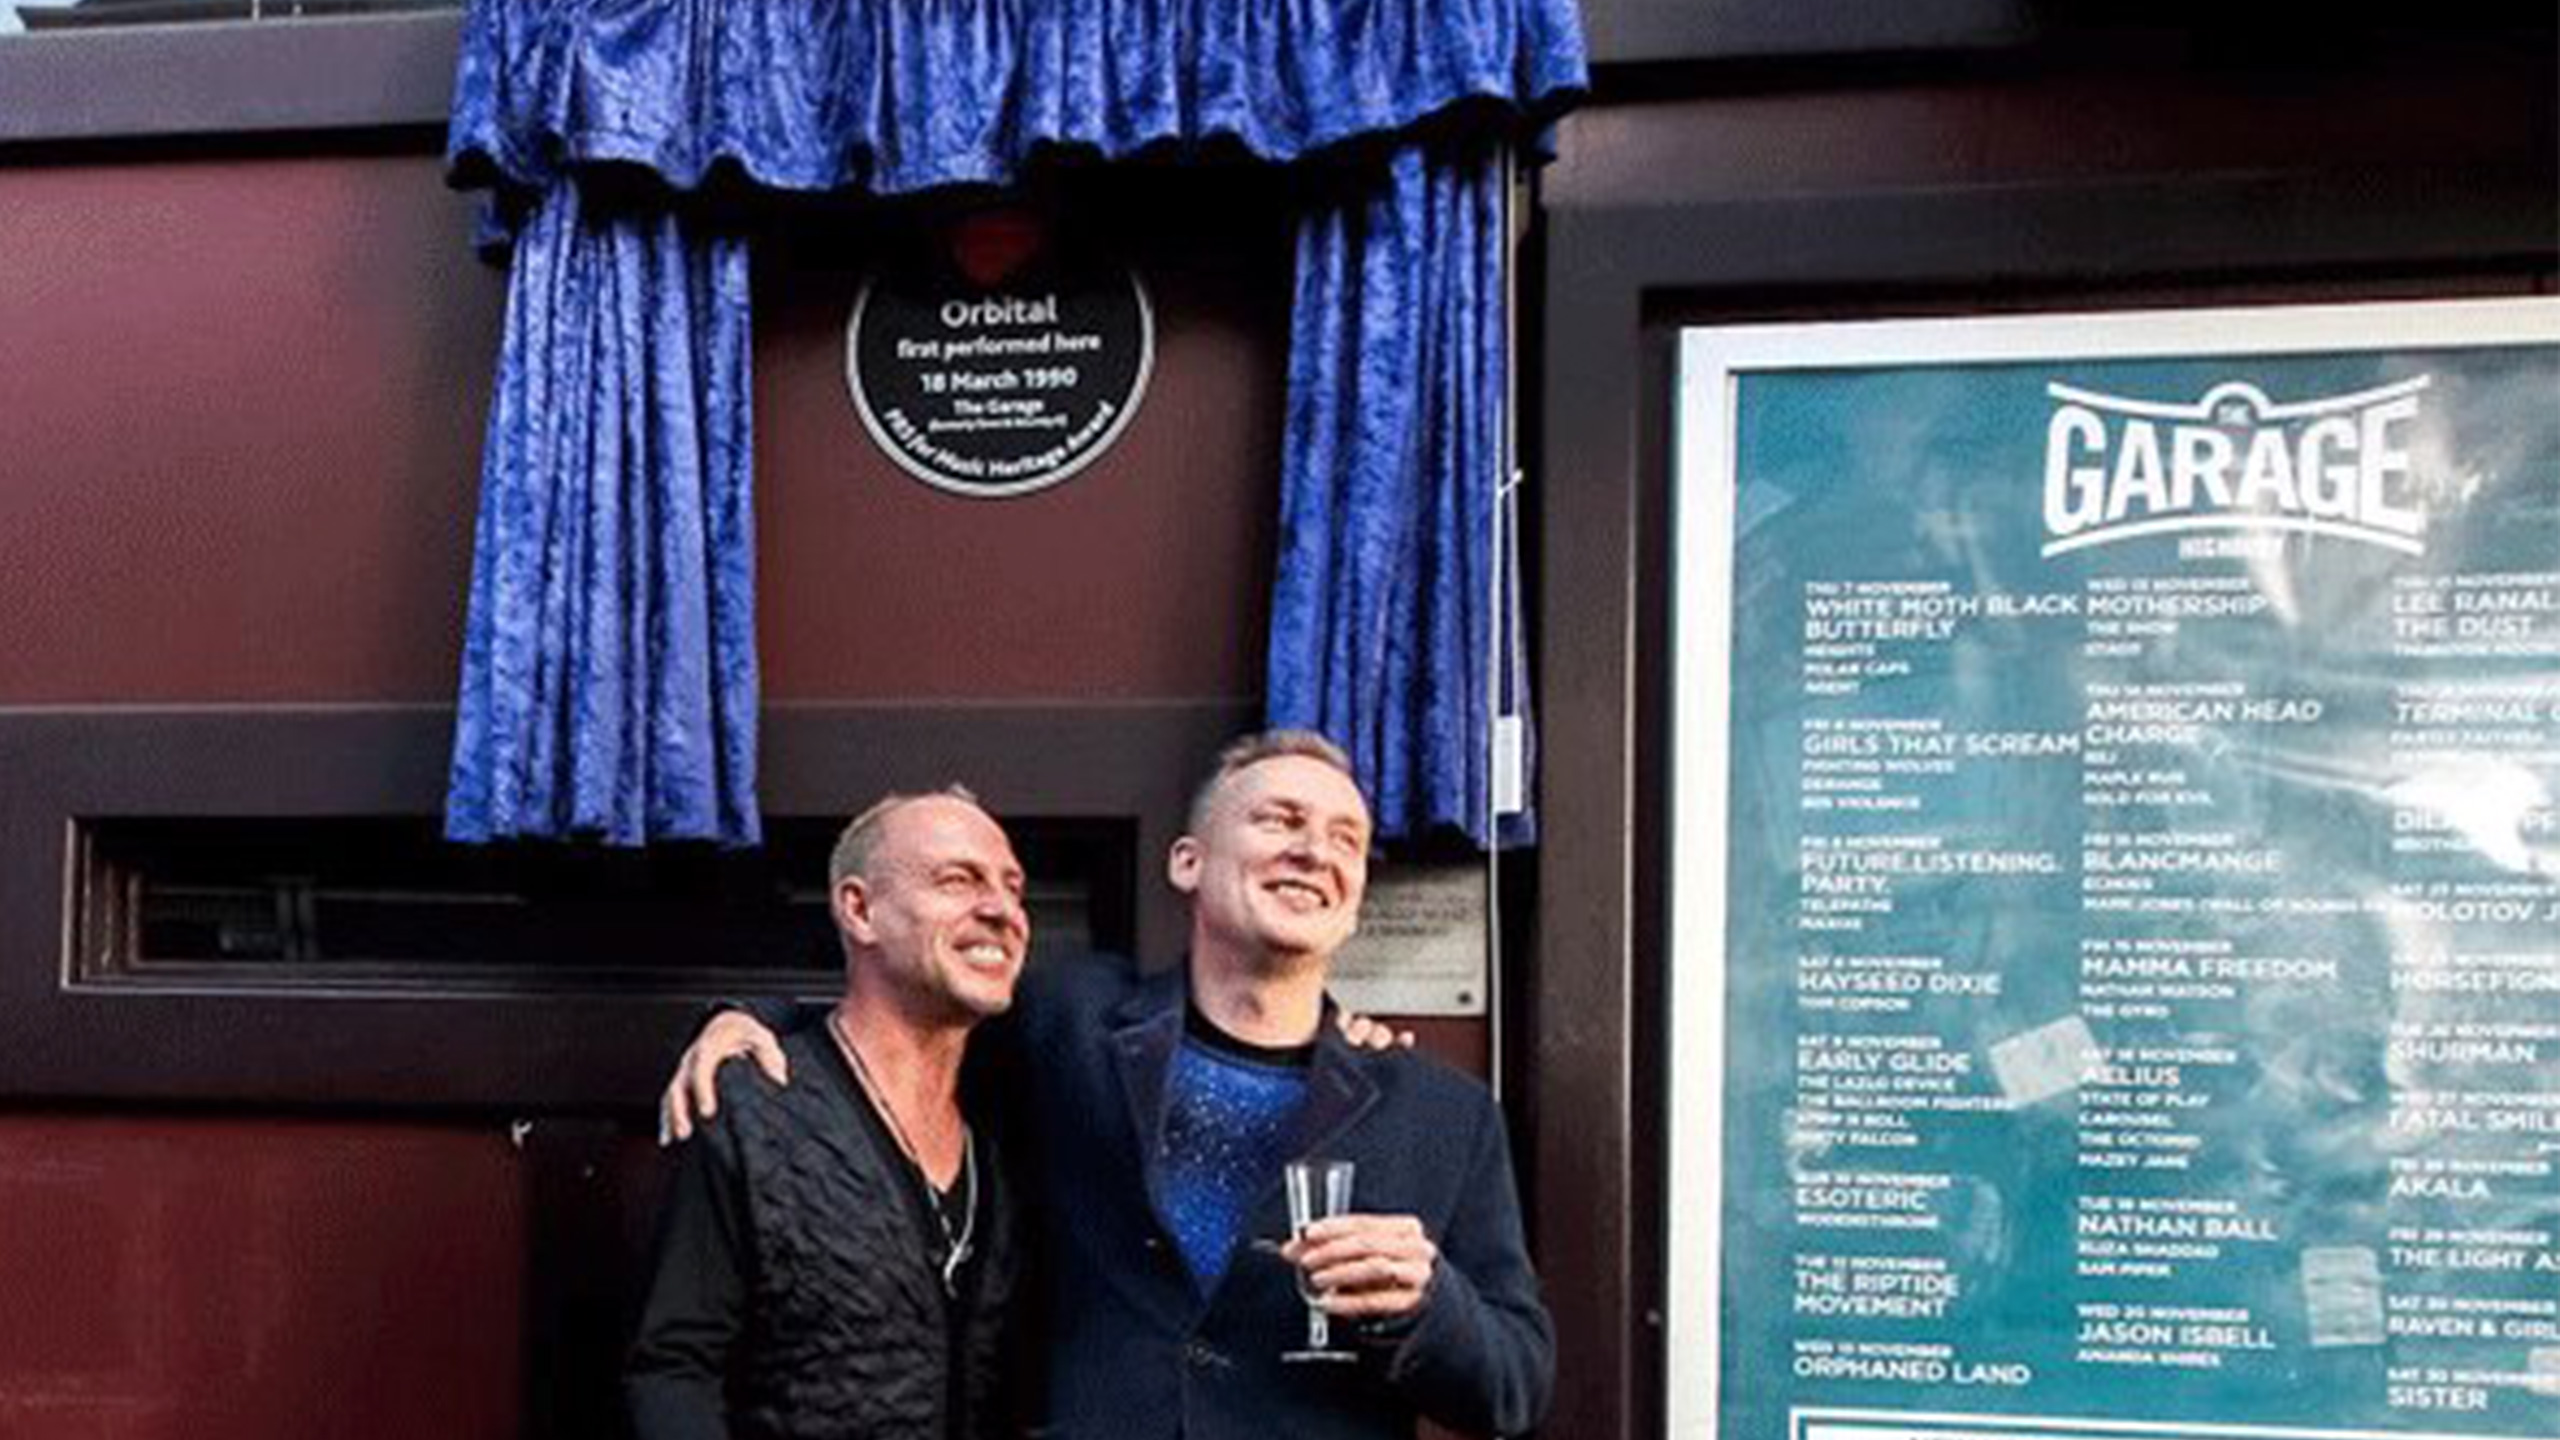 Phil and Paul Hartnoll of Orbital at The Garage in in Highbury, celebrating their Heritage Award